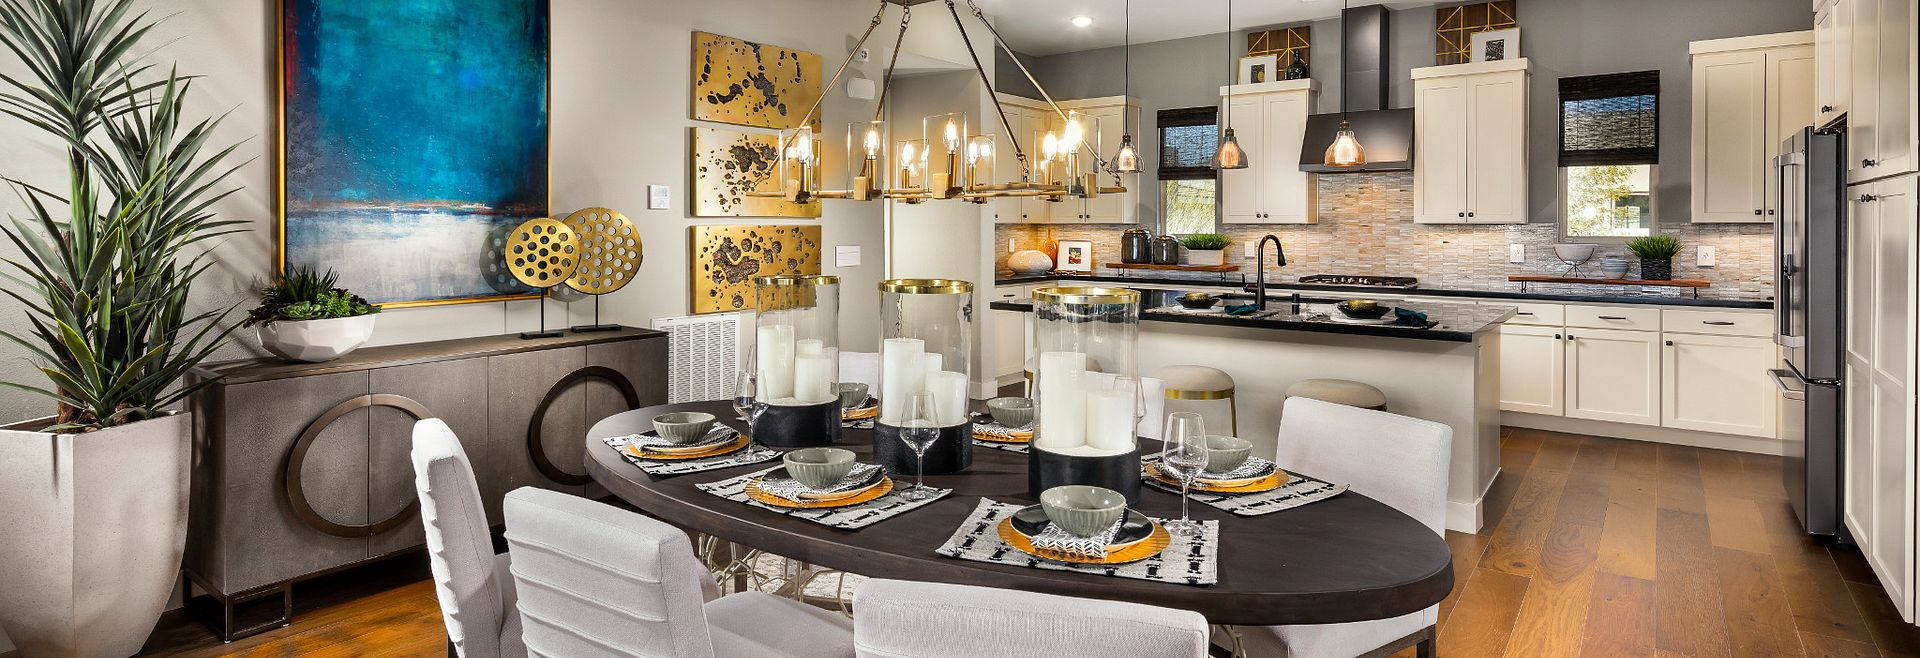 Trilogy Summerlin Splendor Dining & Kitchen